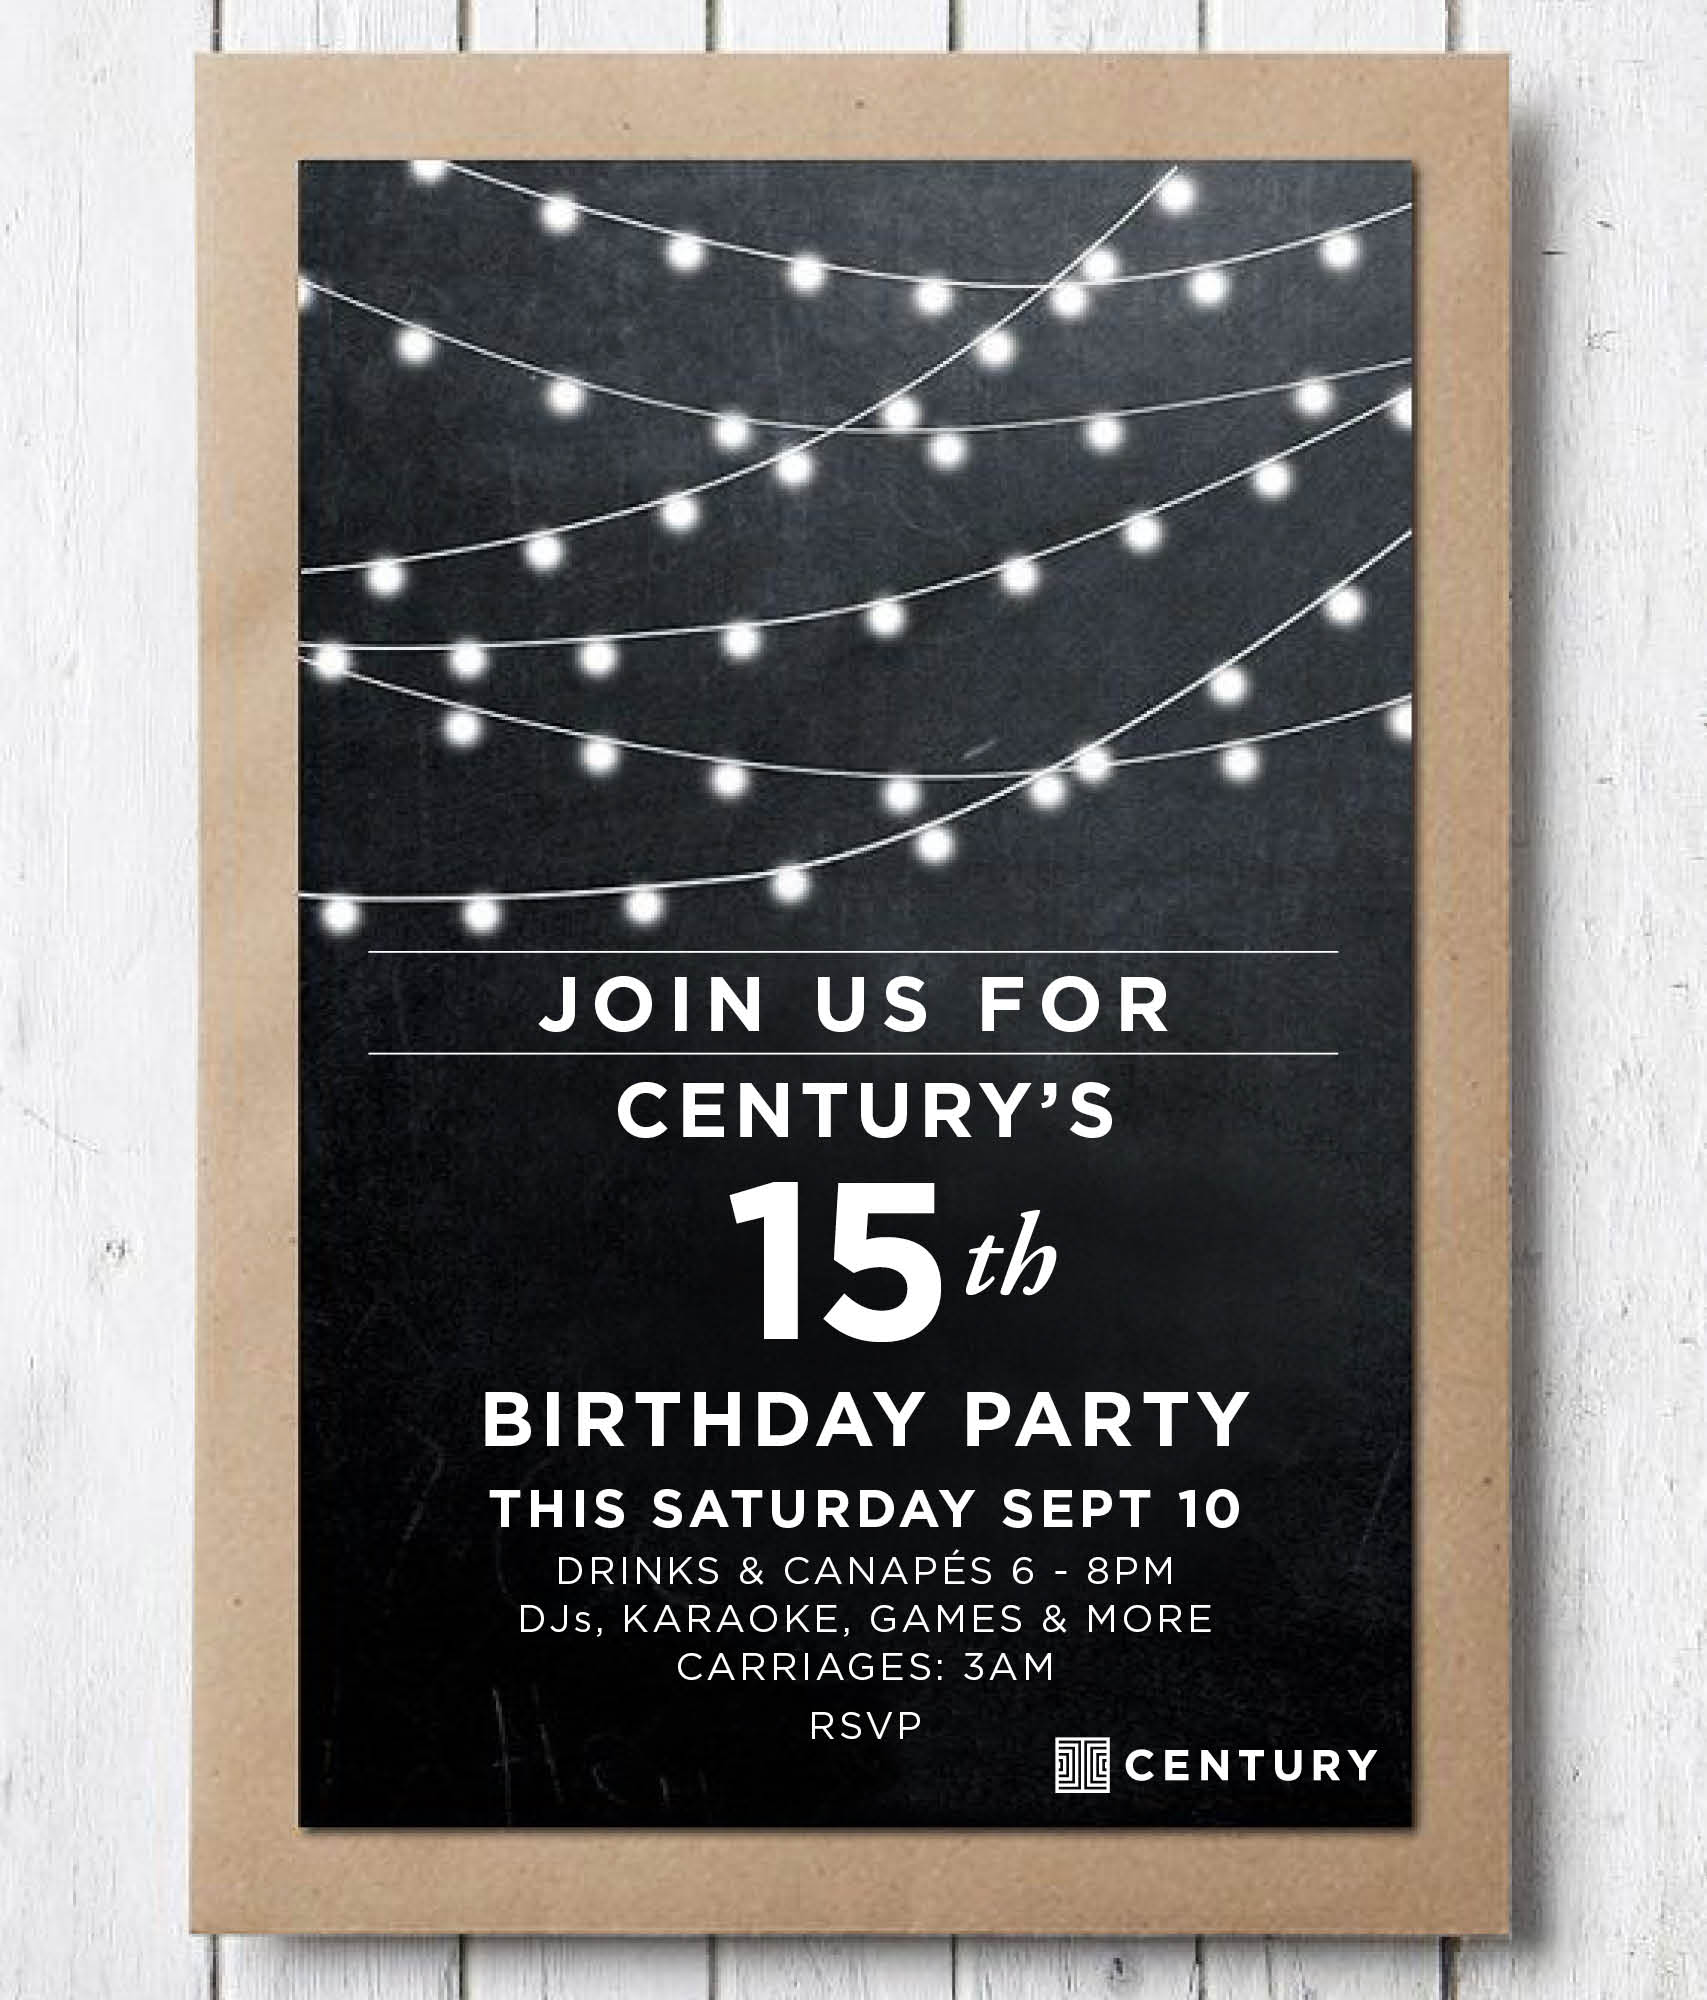 CENTURY 15TH BIRTHDAY PARTY